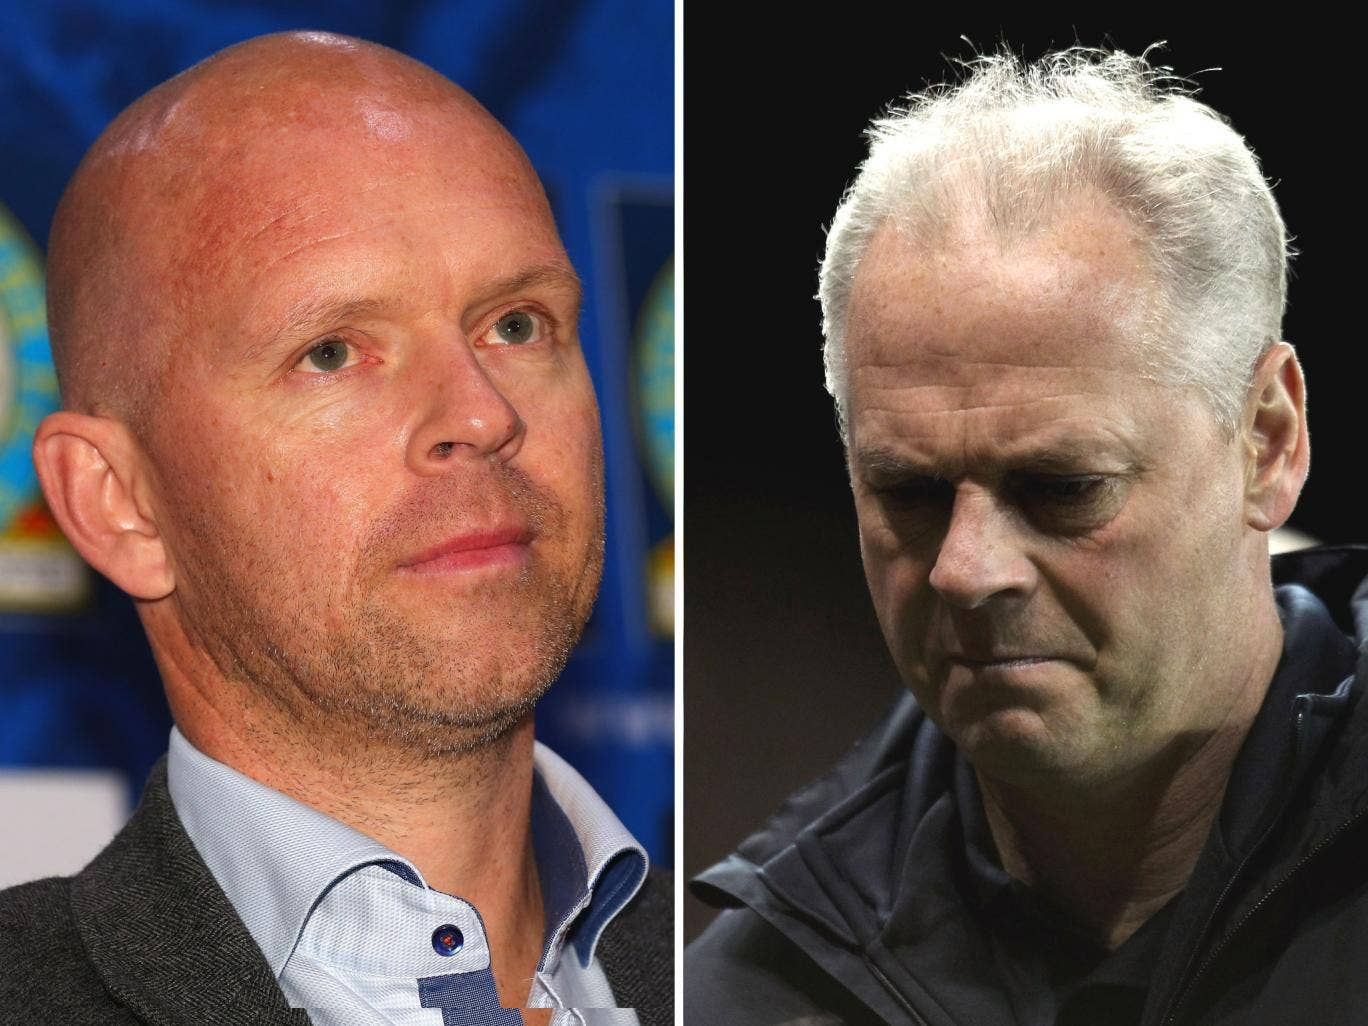 Henning Berg (left) was sacked yesterday, leaving the position of manager open. Little-known coach Judan Ali will take over the running of Blackburn Rovers alongside Kevin McDonald (right)